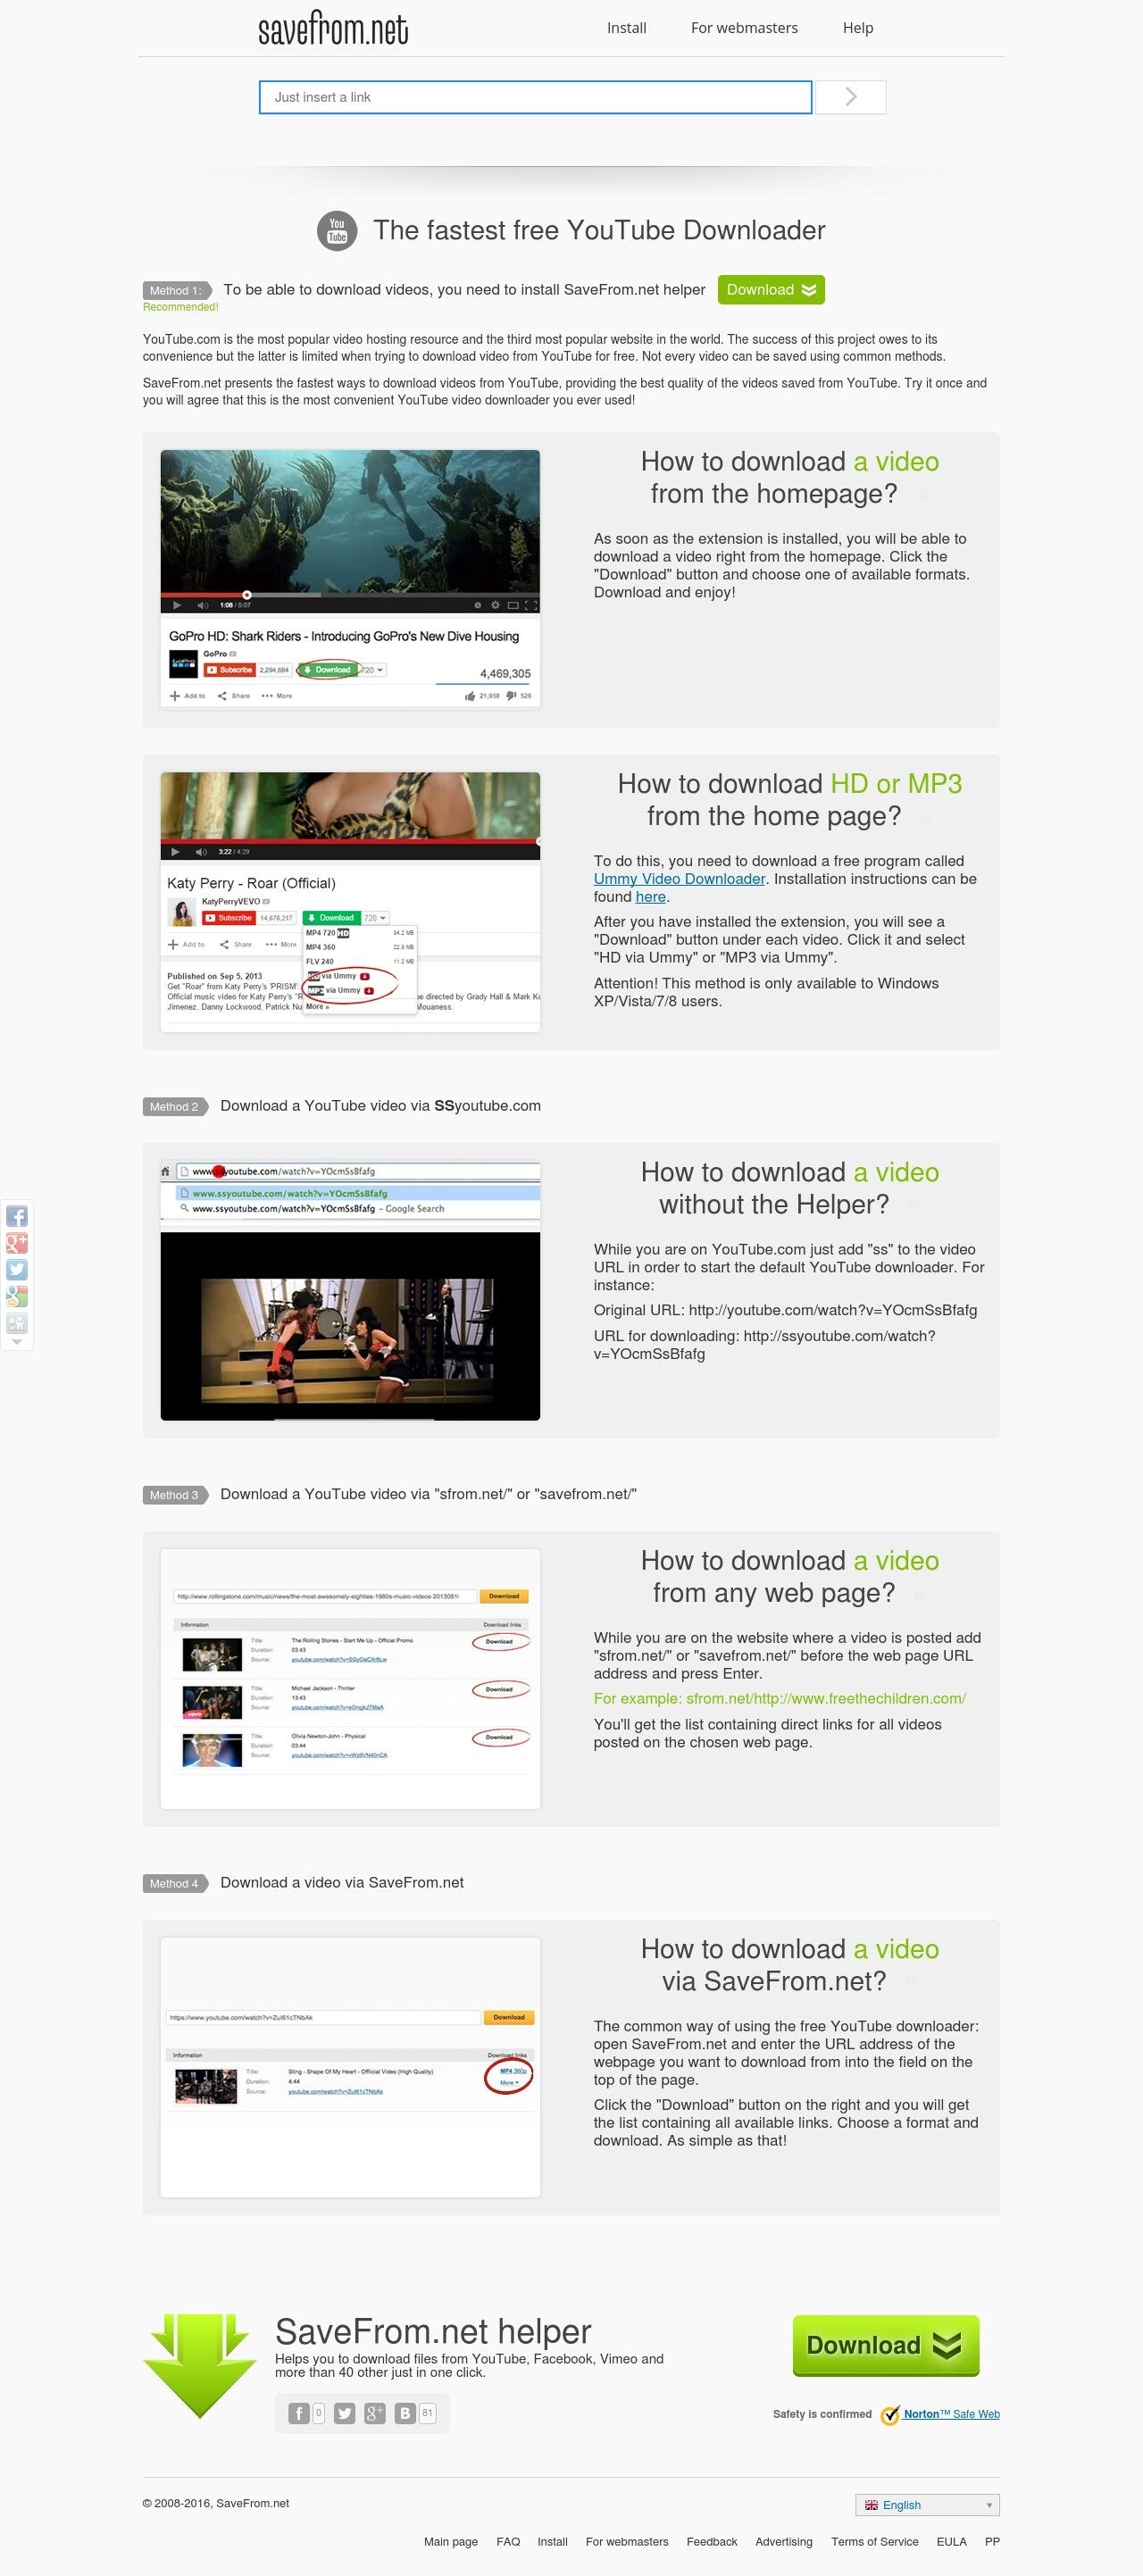 The fastest free YouTube Downloader - Savefrom net | Videos